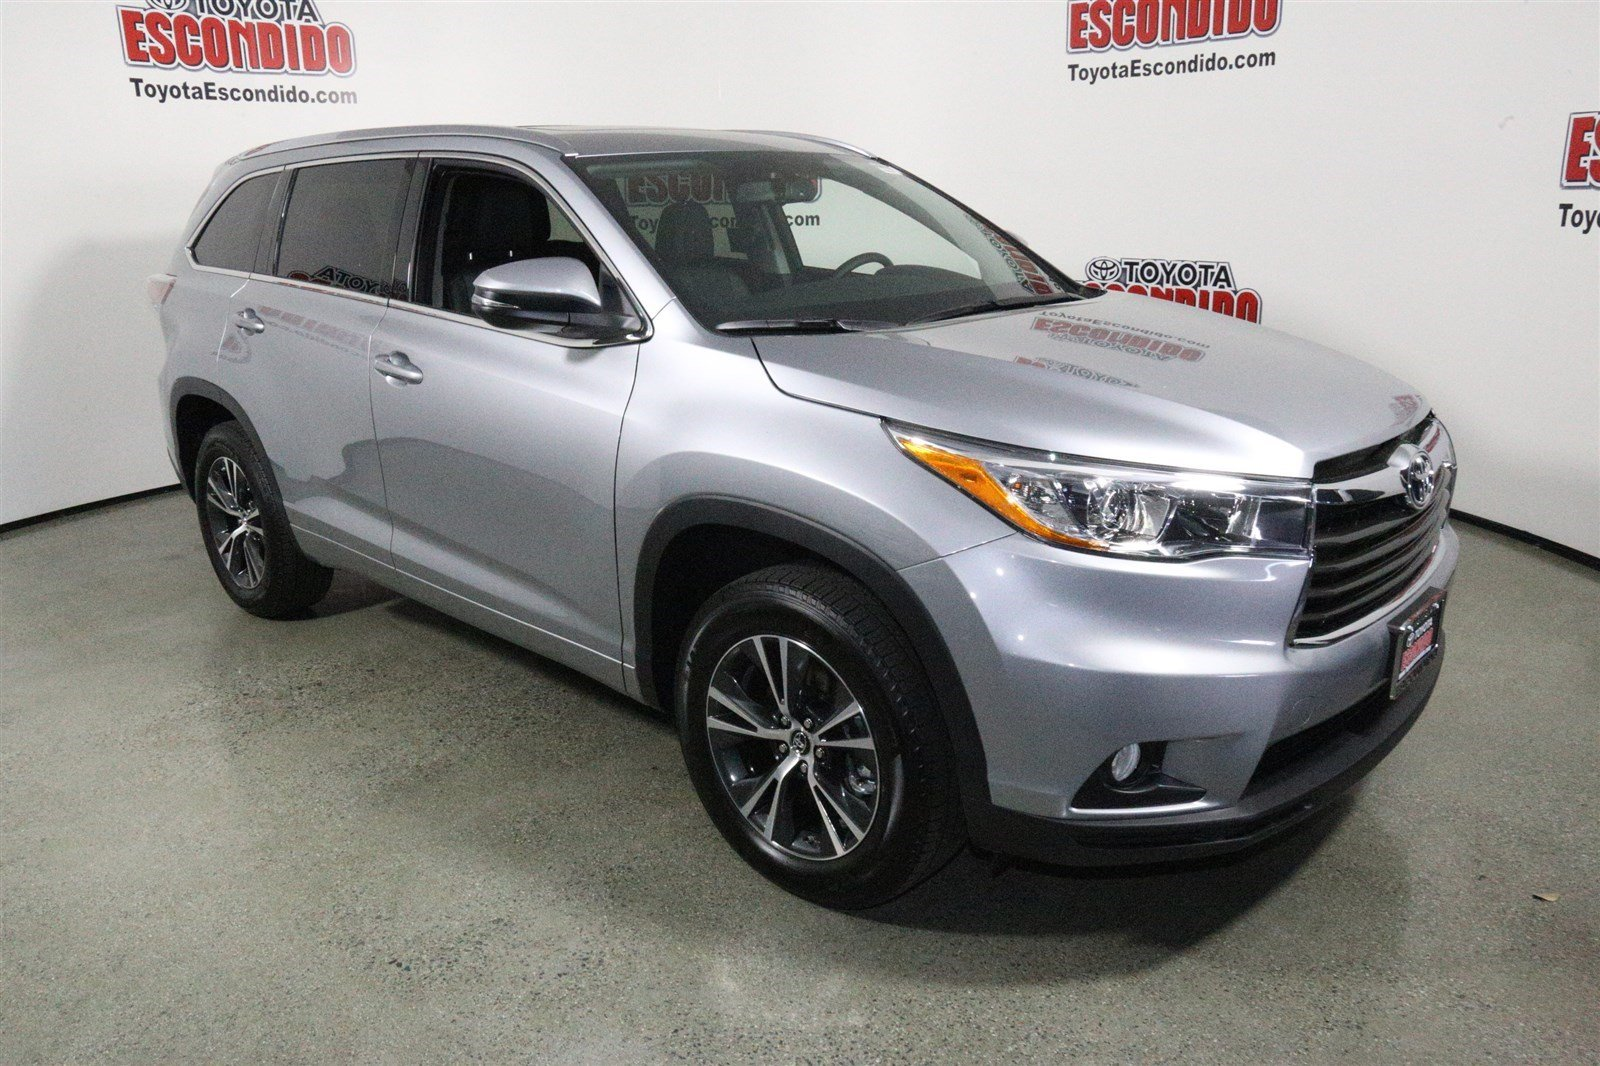 new 2016 toyota highlander xle sport utility in escondido 1014298 toyota of escondido. Black Bedroom Furniture Sets. Home Design Ideas